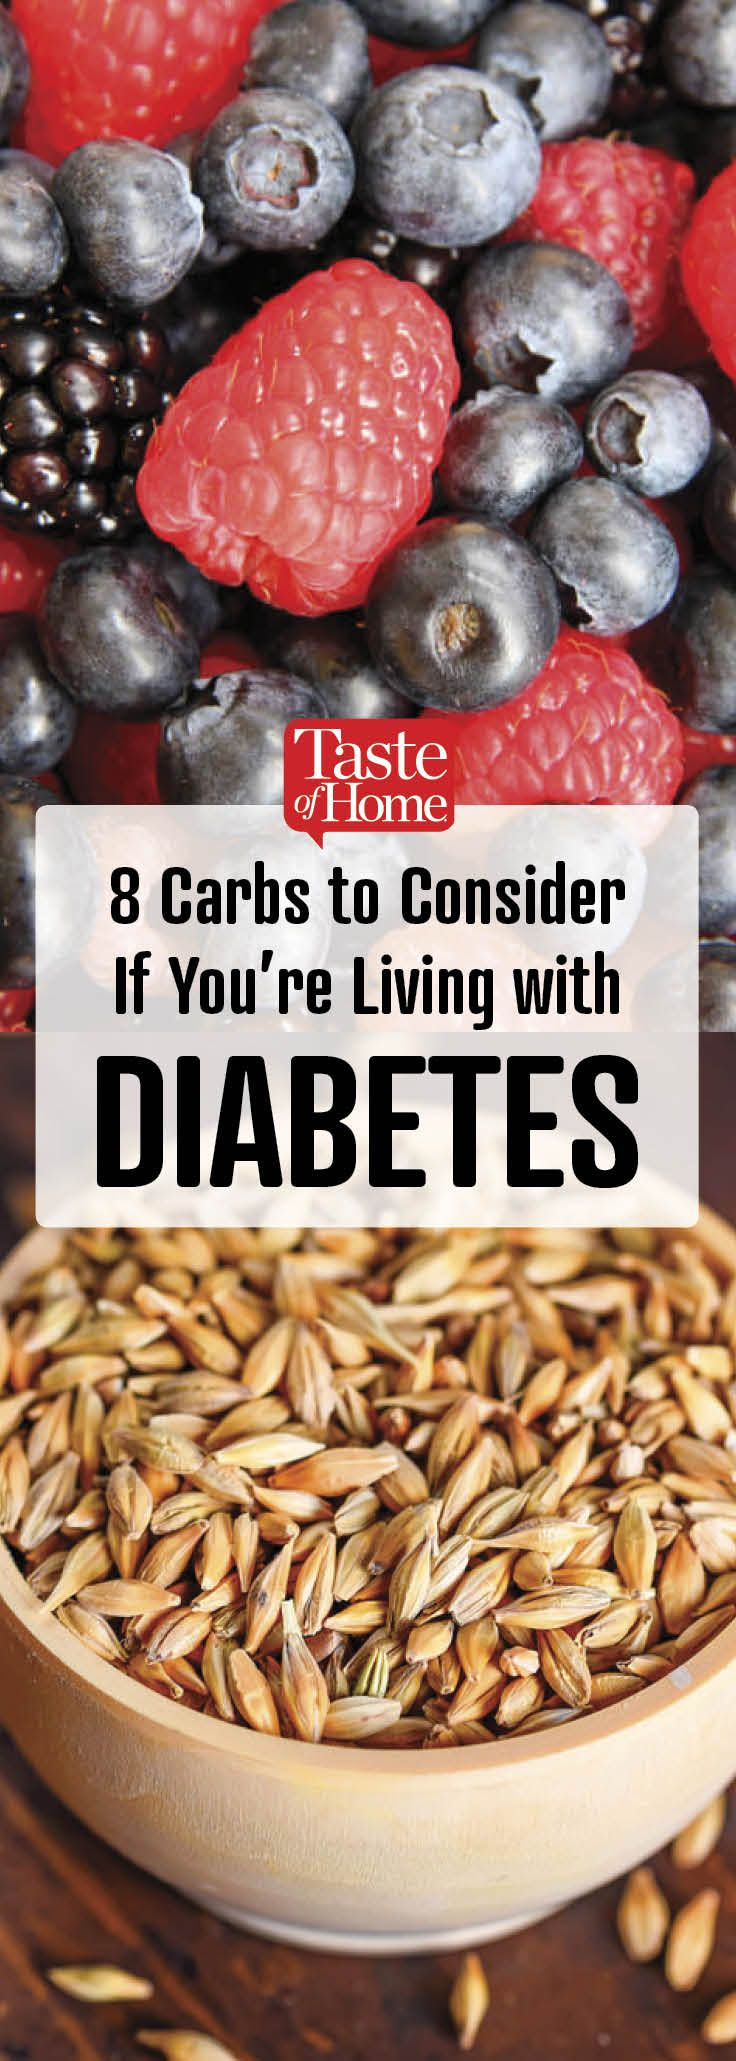 8 Carbs to Love If You're Living with Diabetes (Really